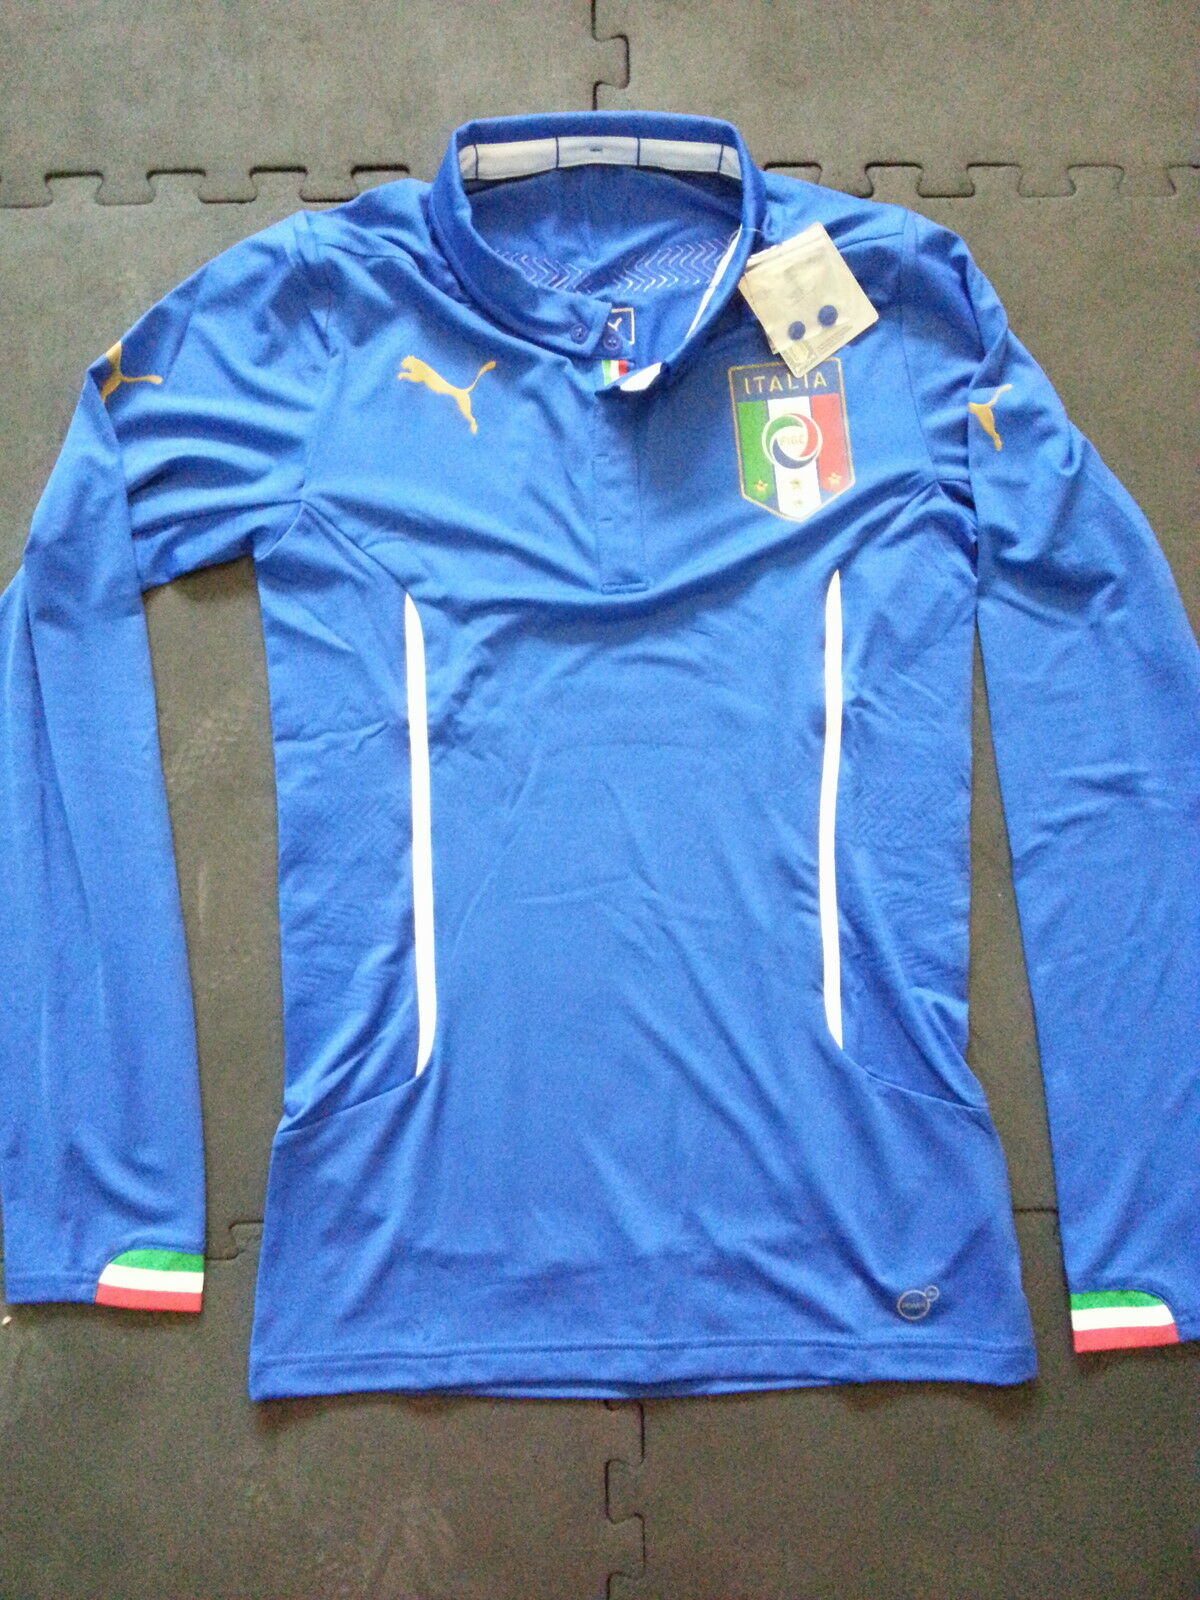 Maillot Puma Italie Italy ACTV Player Issue Issue Issue Trikot Shirt Jersey Maglia Camiseta 3bdf41